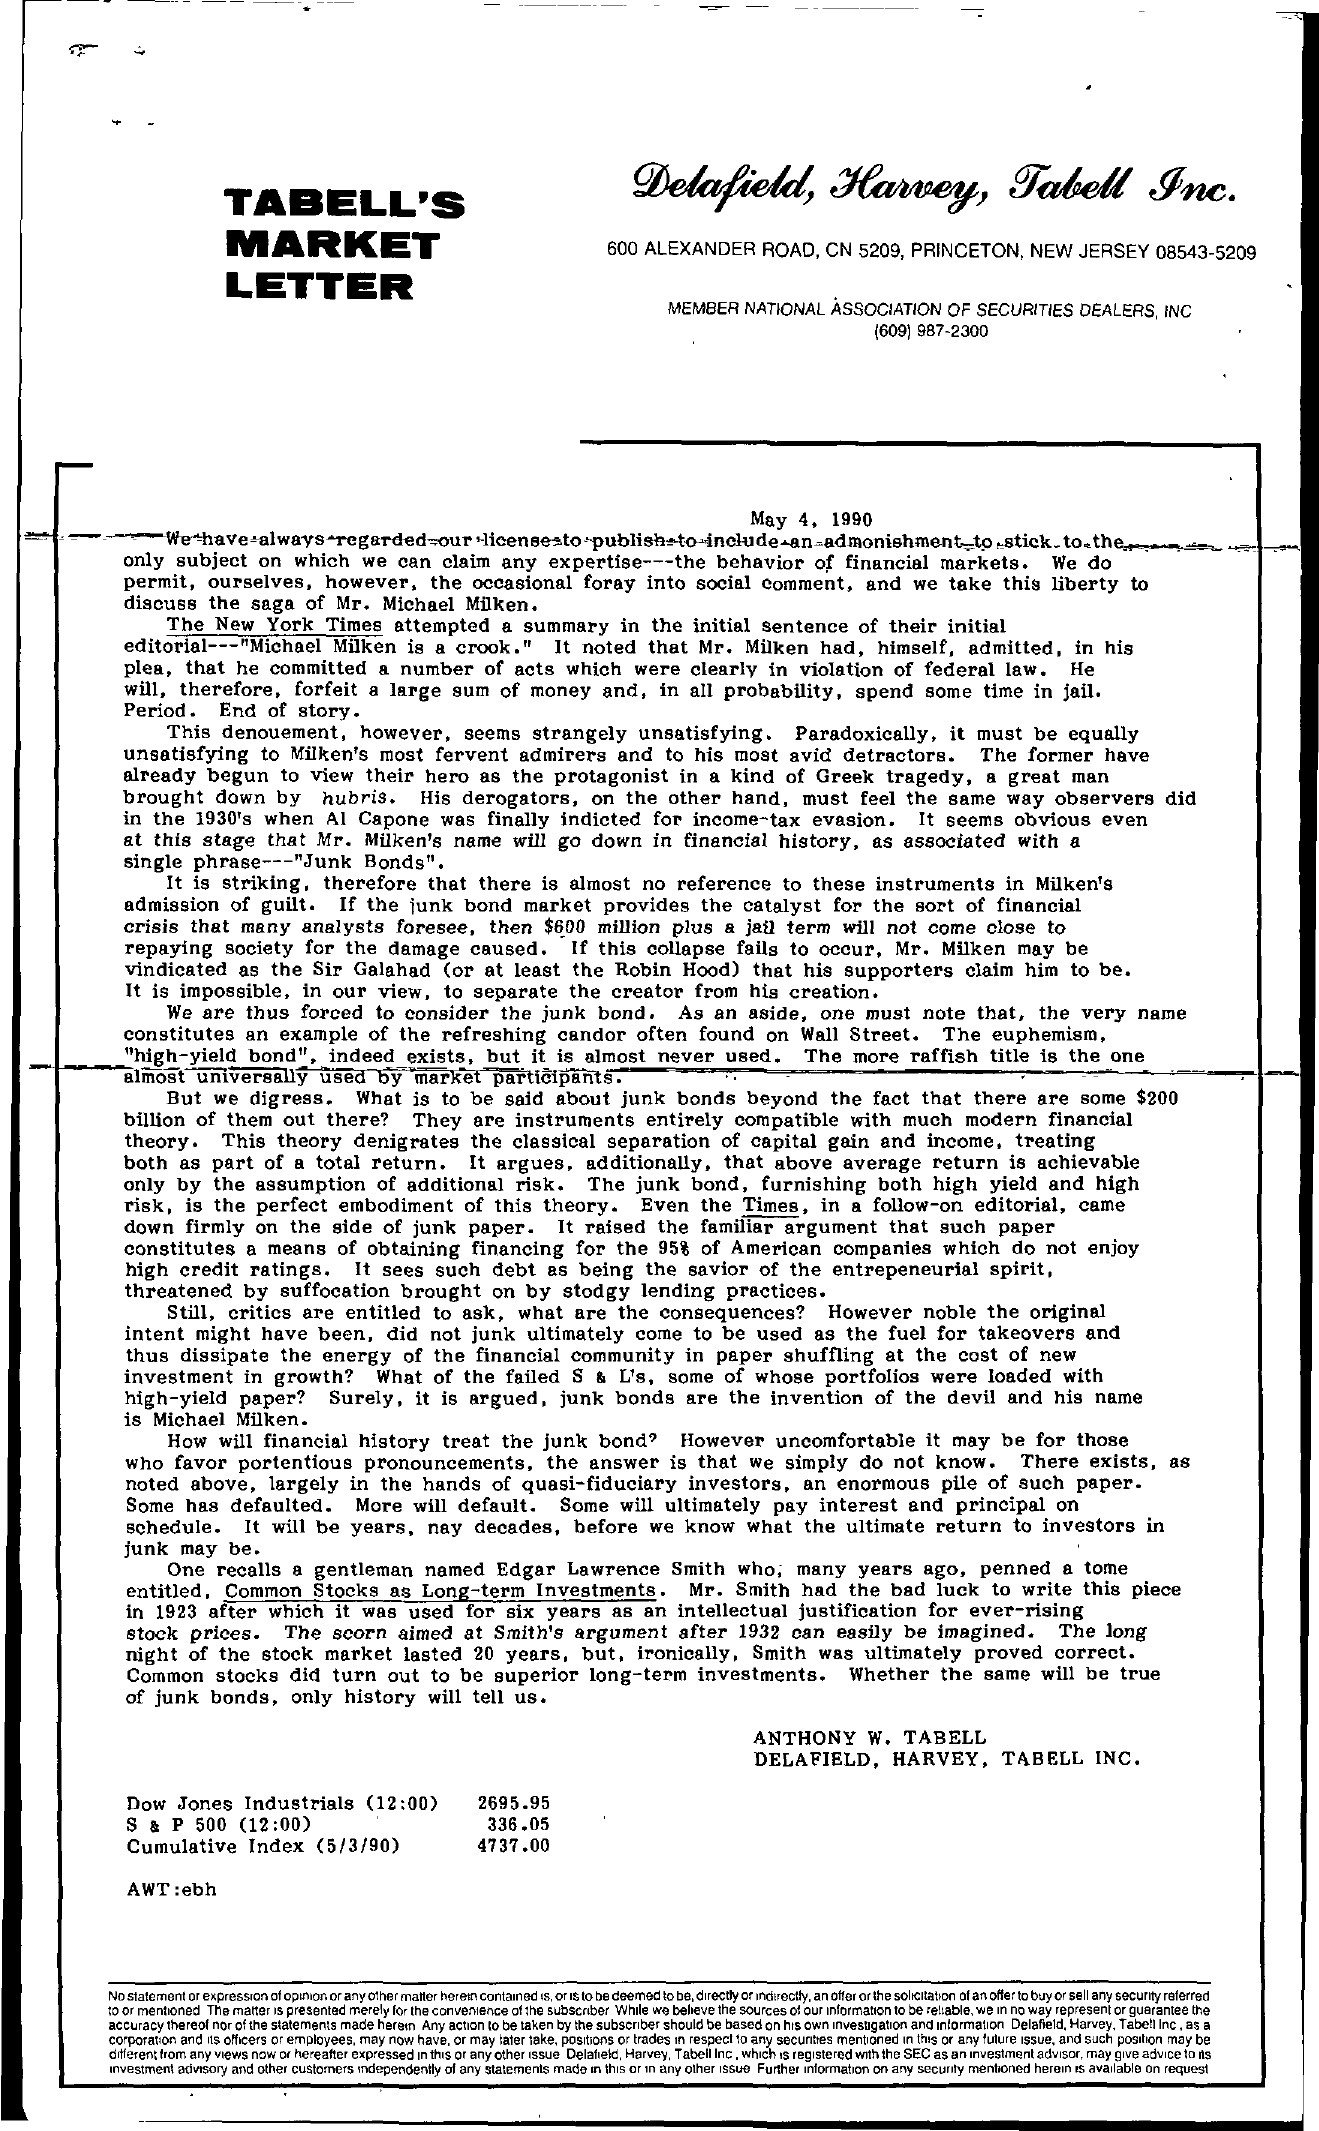 Tabell's Market Letter - May 04, 1990